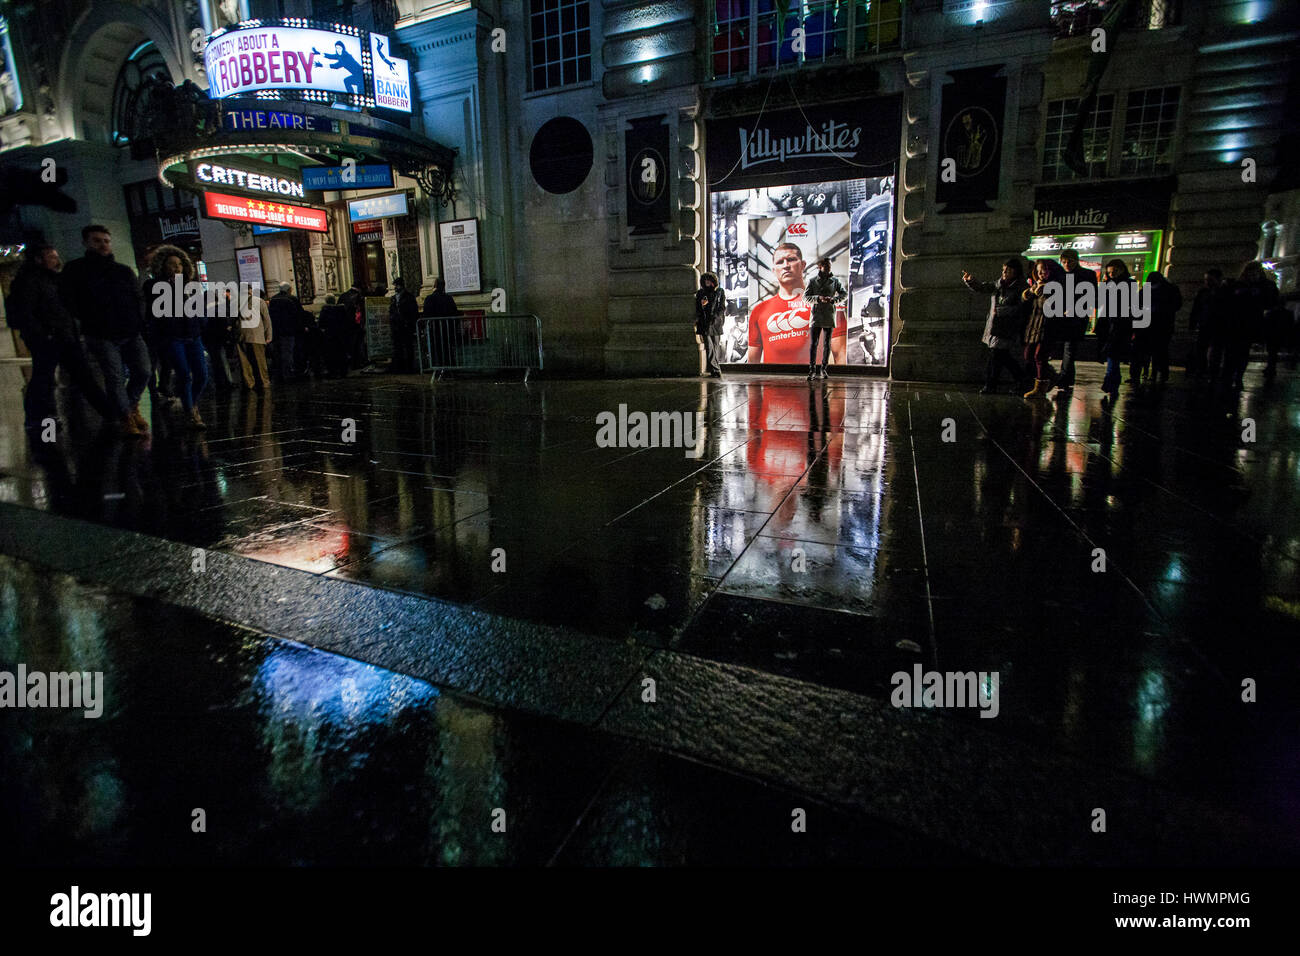 night view of people and reflections on wet street in piccadilly circus - Stock Image